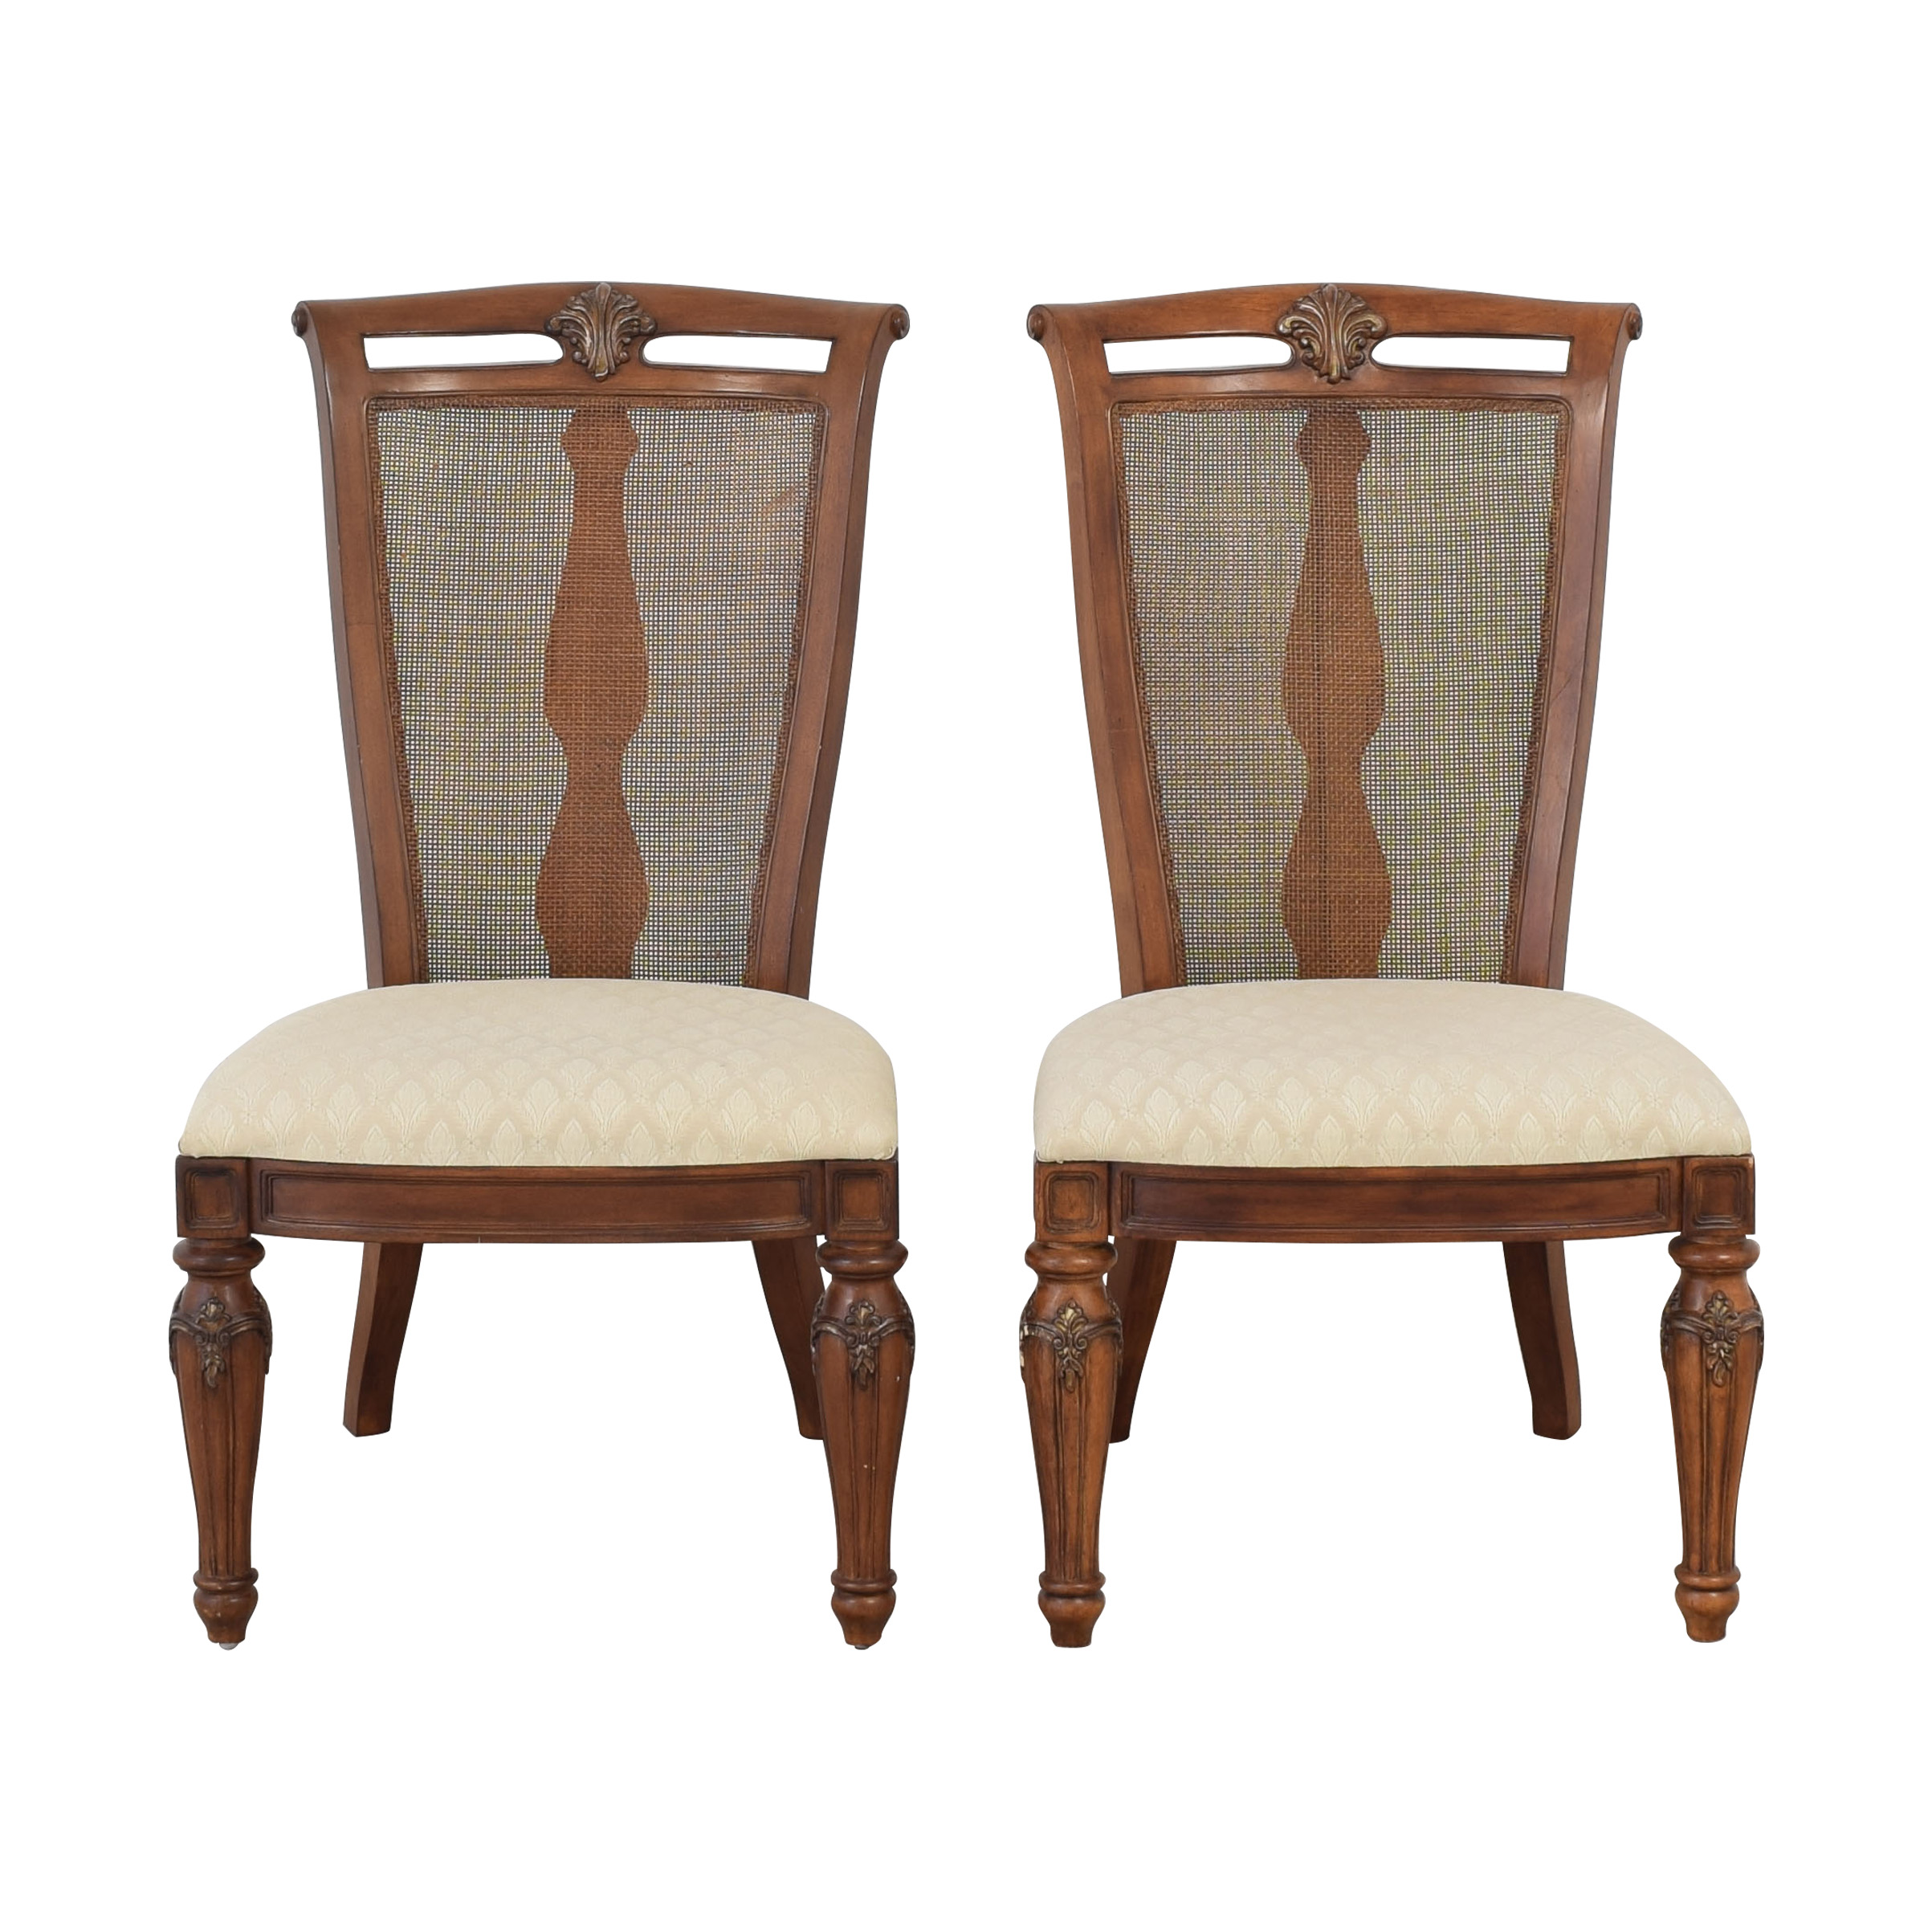 shop The Lane Company The Lane Company Side Dining Chairs online